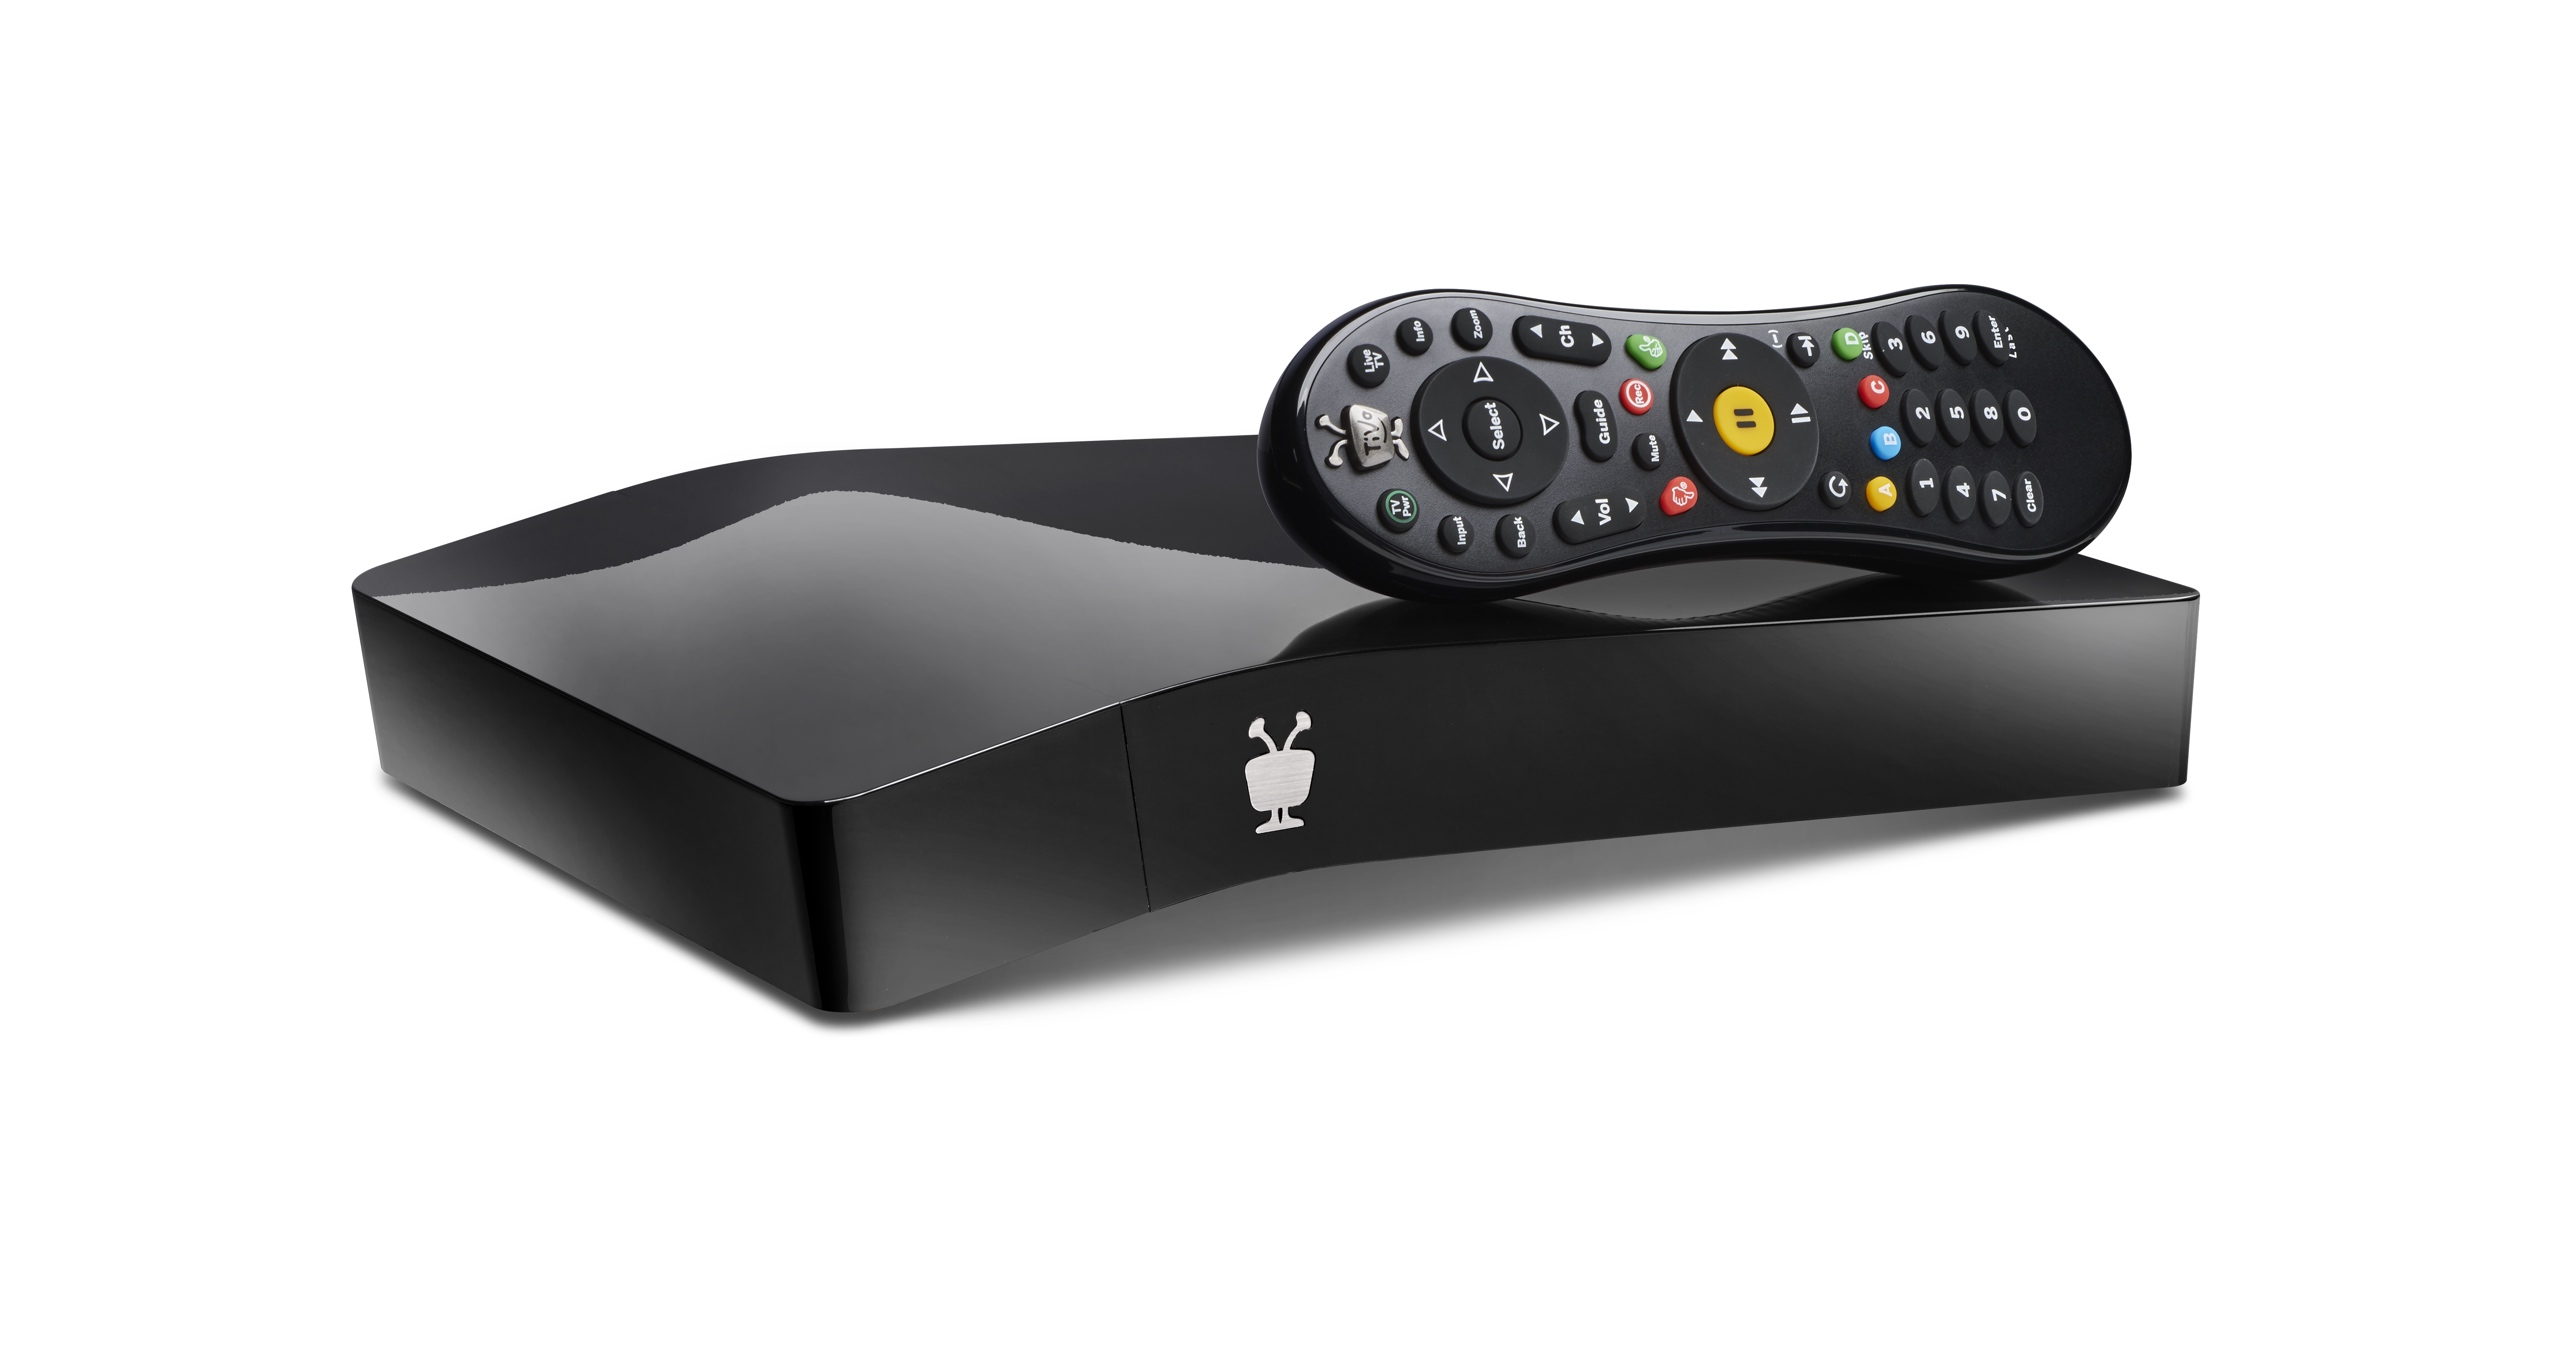 New TiVo BOLT+ Now Includes 6 Tuners and 3TB Storage